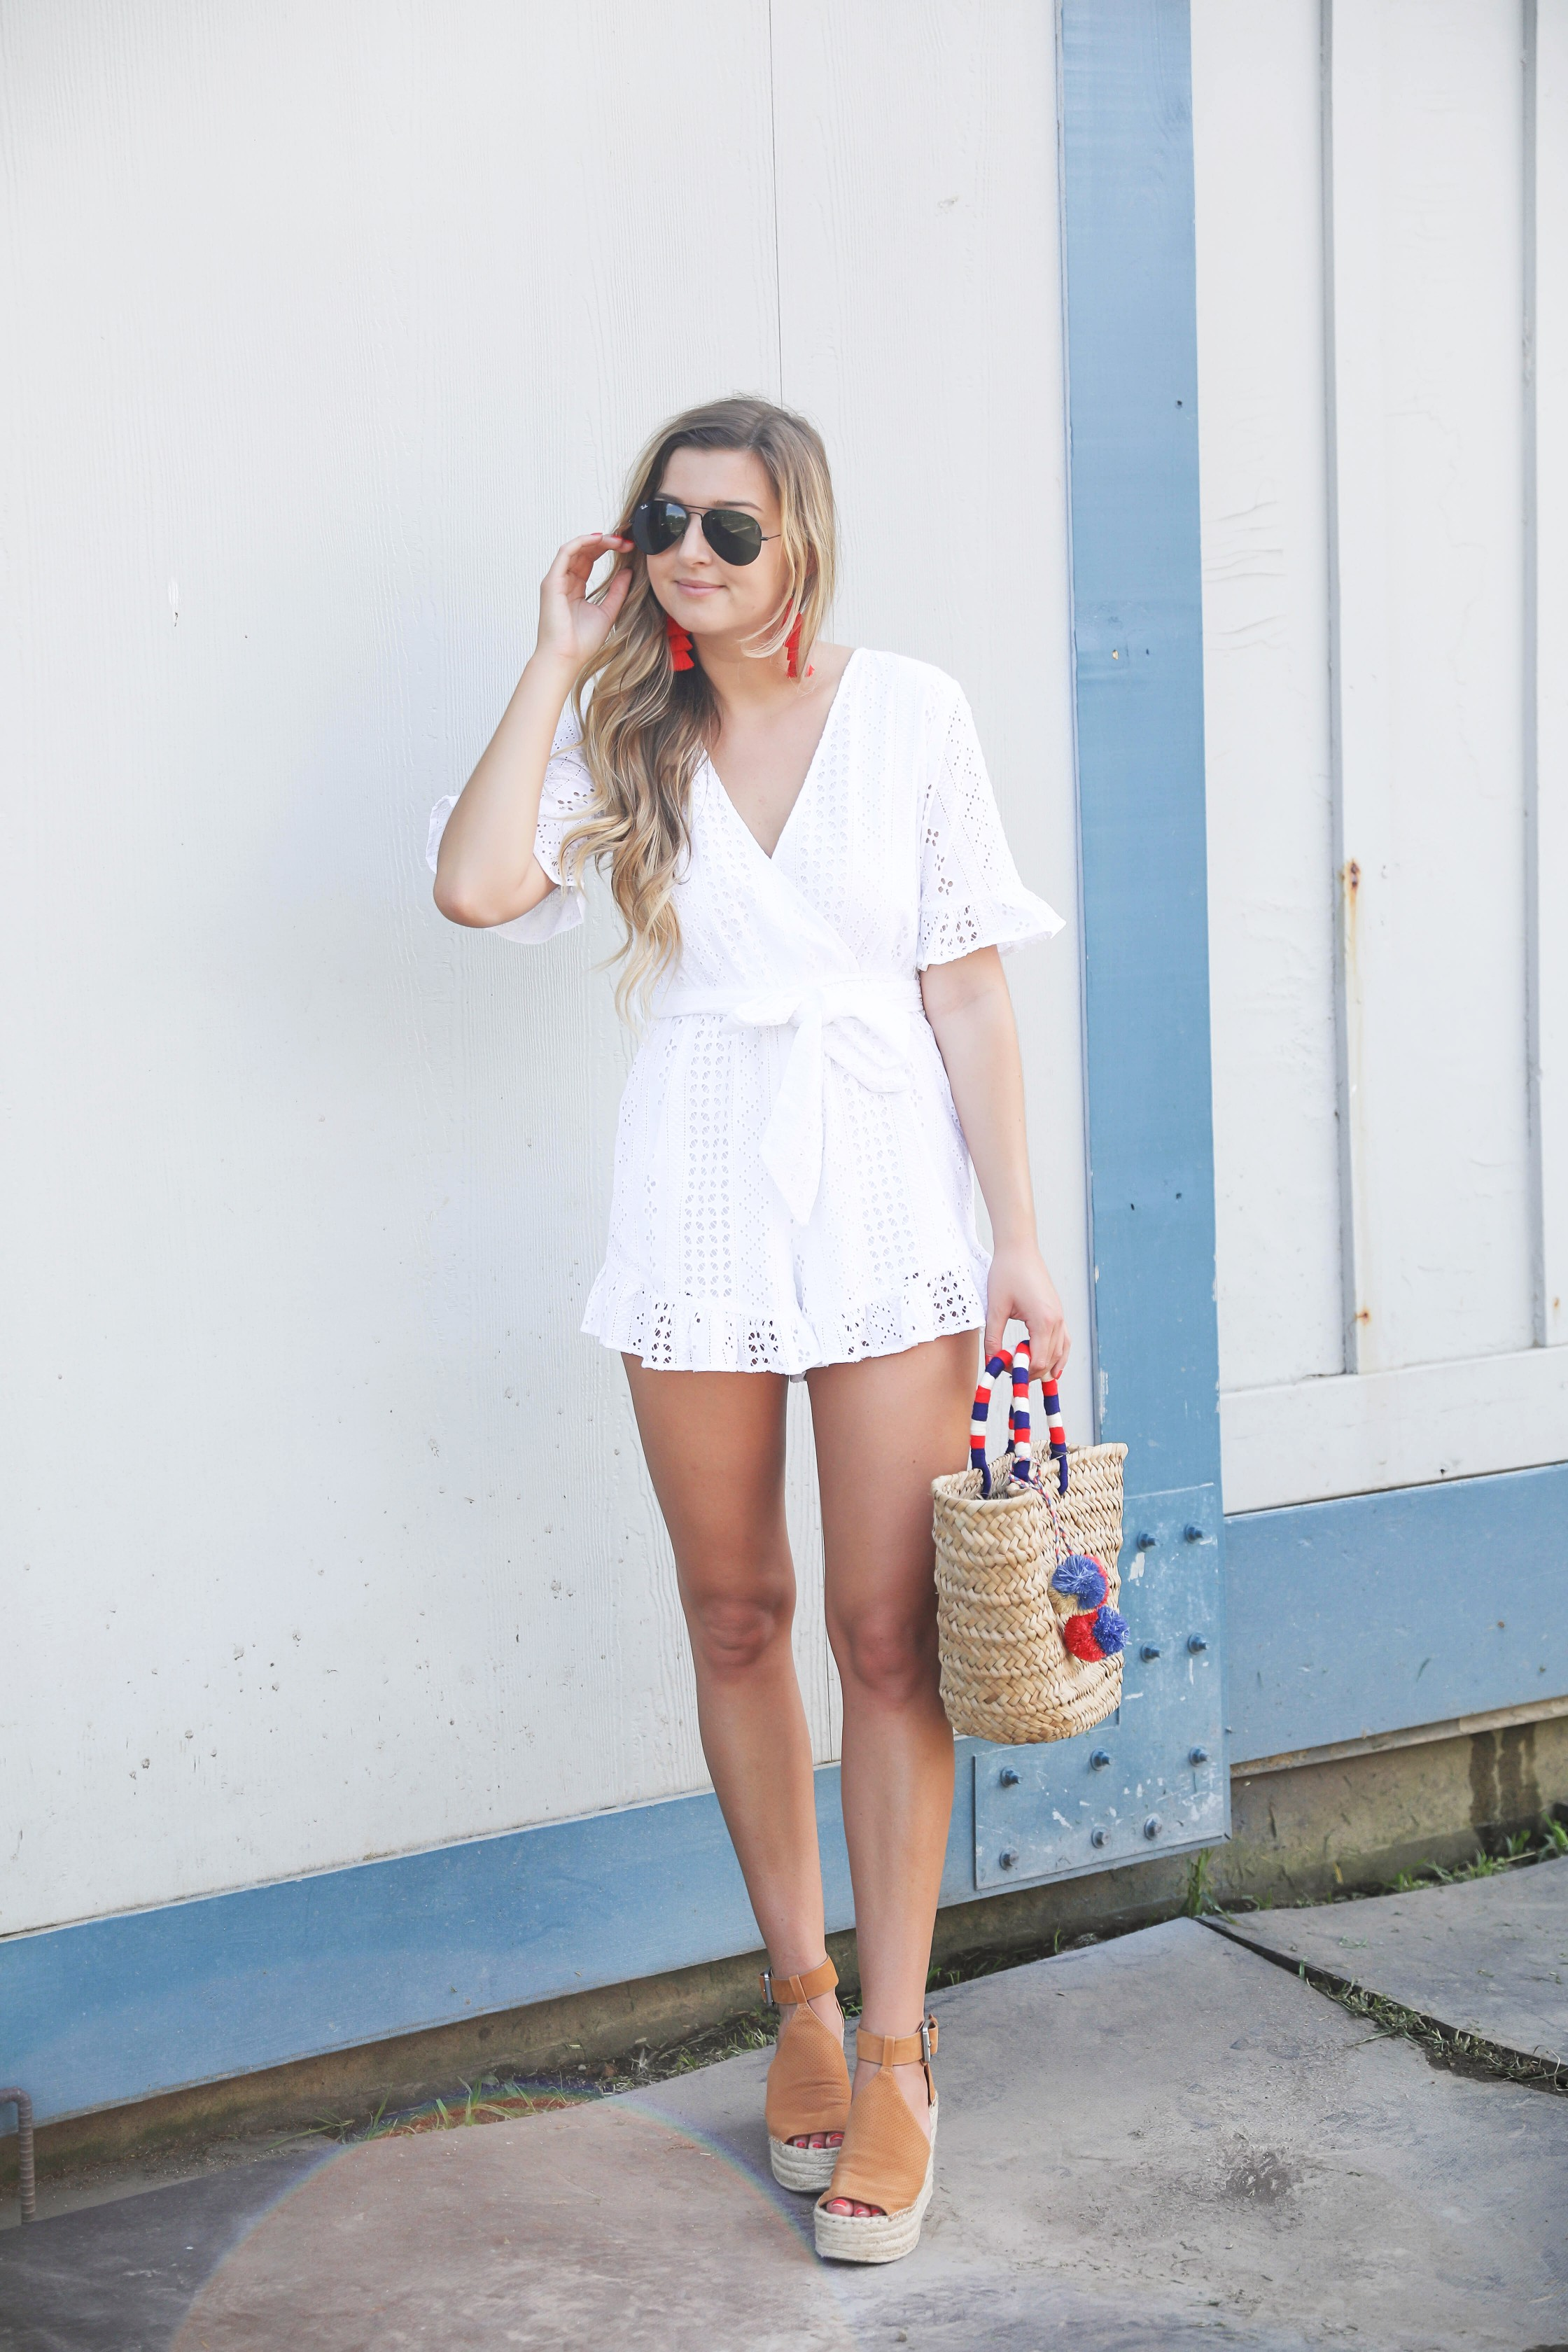 White ruffle tied romper perfect for dressing up or dressing down! Paired with a cute straw beach bag for fourth of july! The beach bag has red white and blue pom poms on it! I finished the fourth of july outfit with red tassel earrings and my favorite wedges! Details on fashion blog daily dose of charm by lauren lindmark